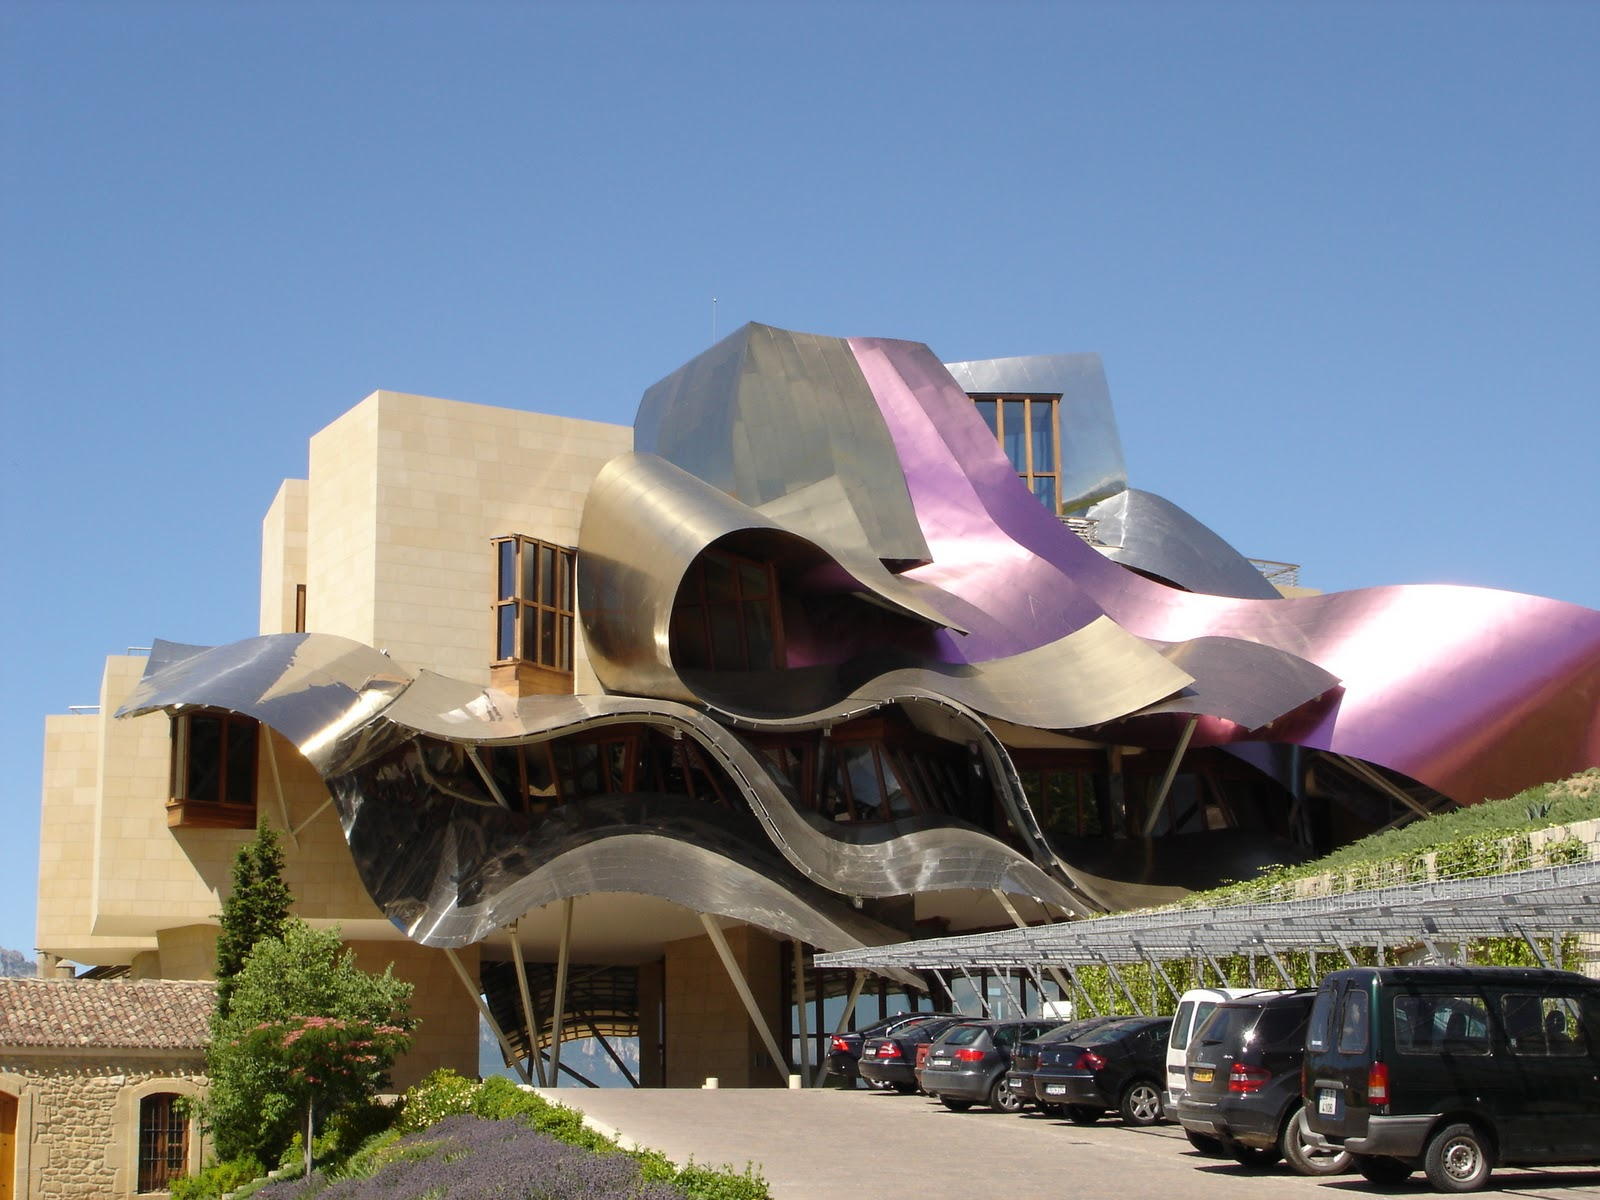 Written word architecture frank gehry redefining the for Hotel marques de riscal